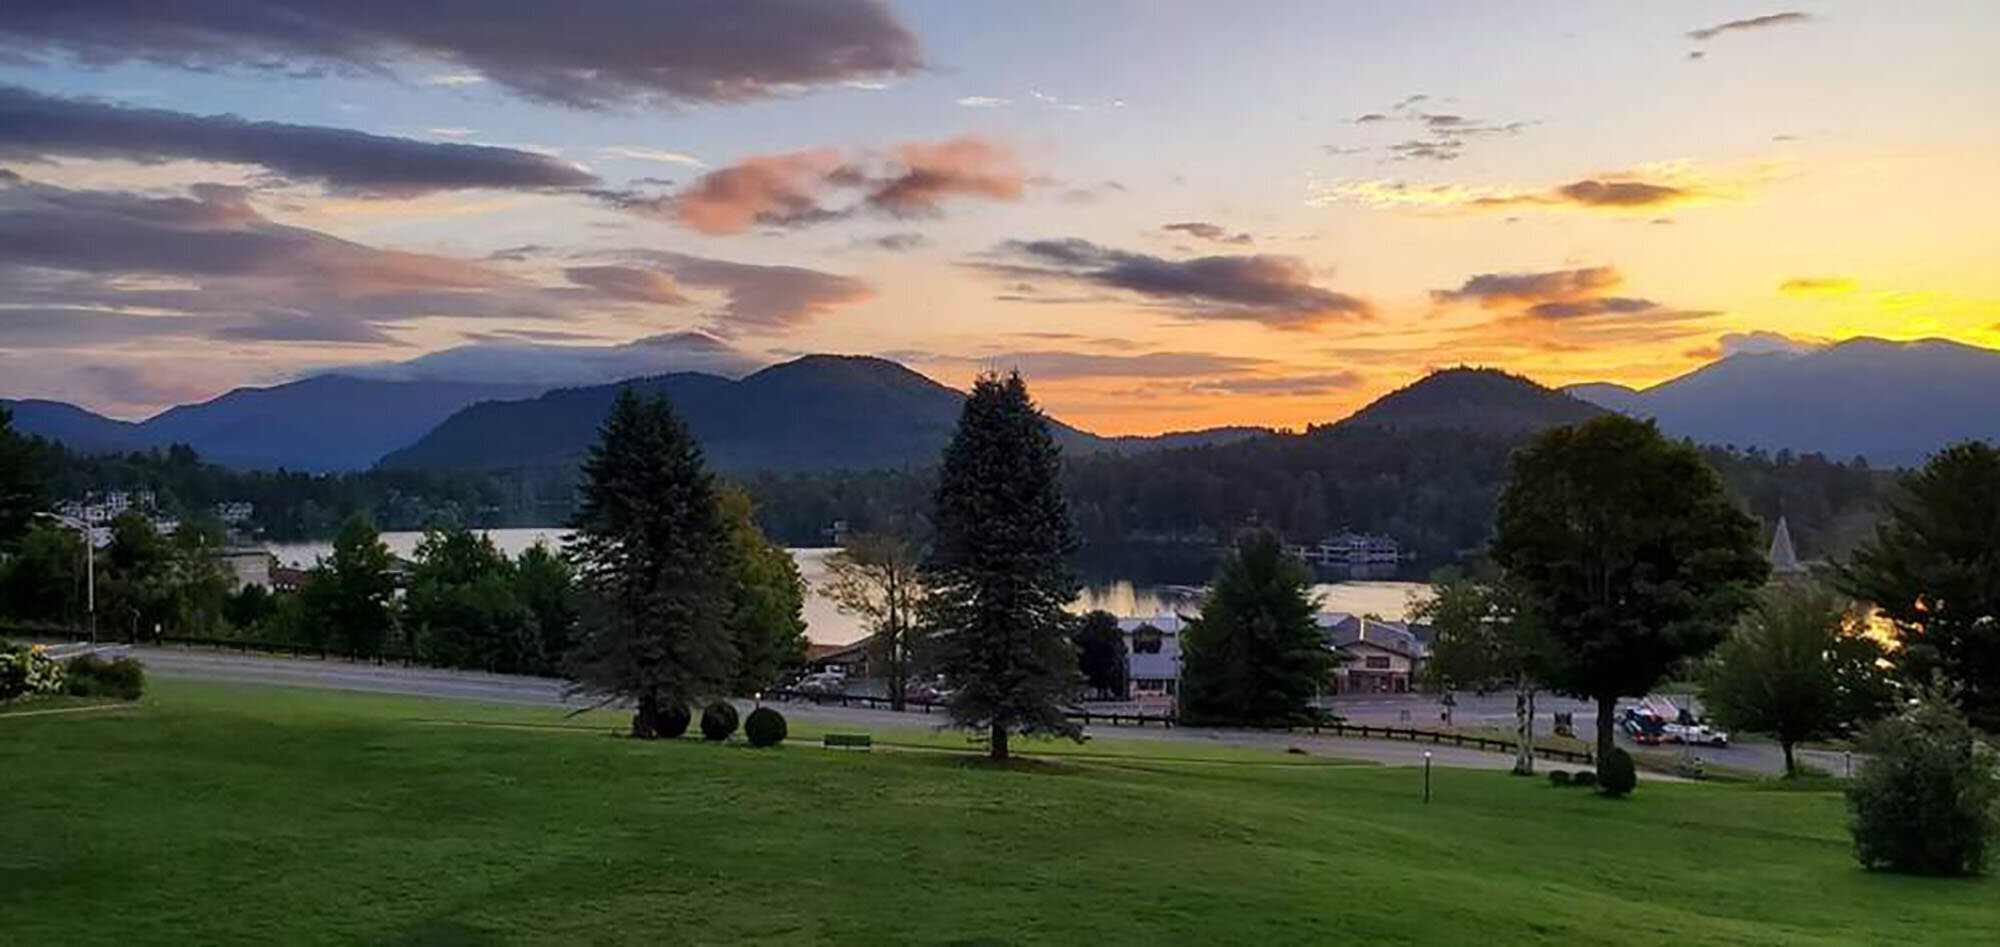 Sunrise at Lake Placid.